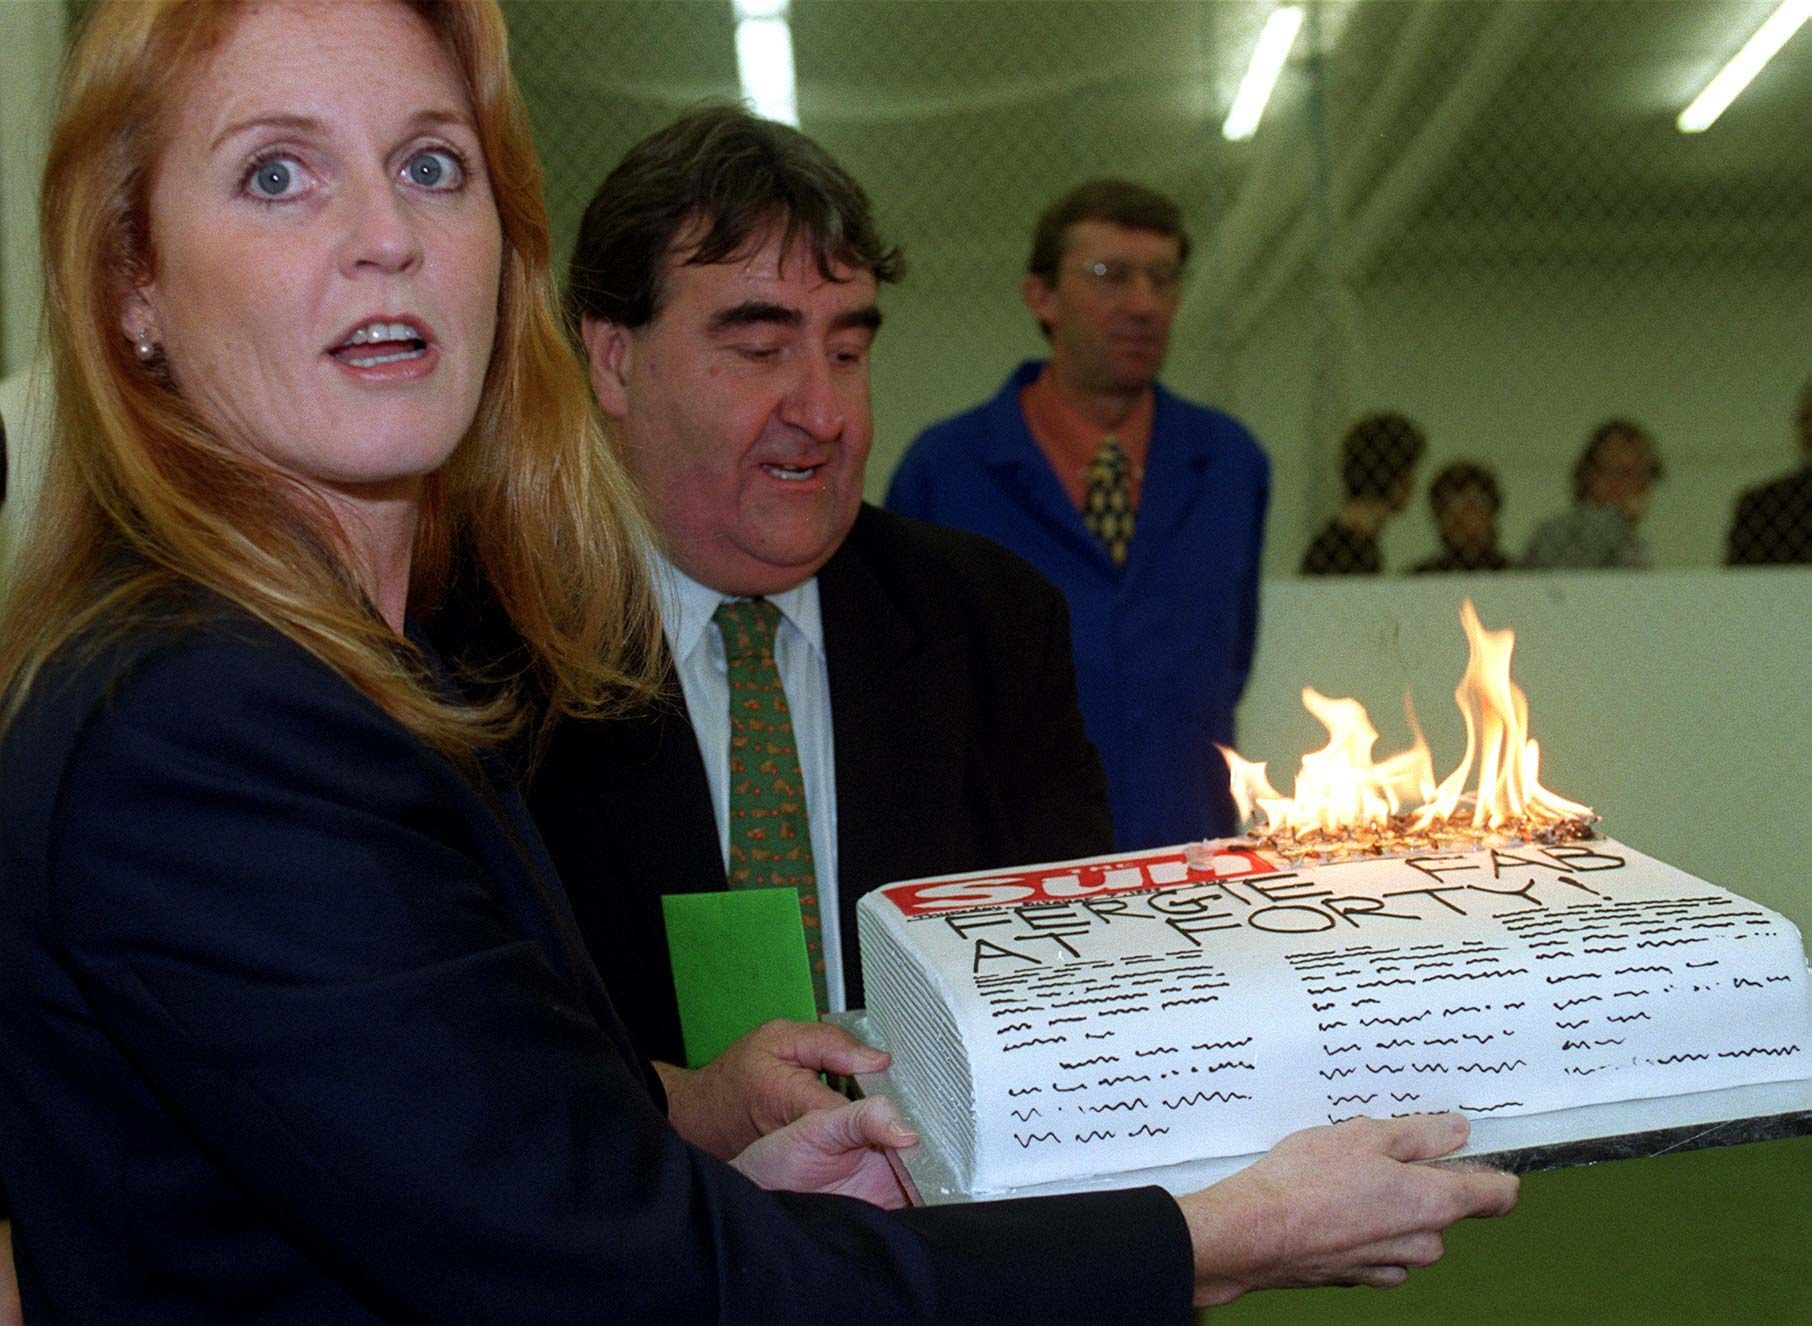 Duchess of York holding a cake shaped like a newspaper that's on fire